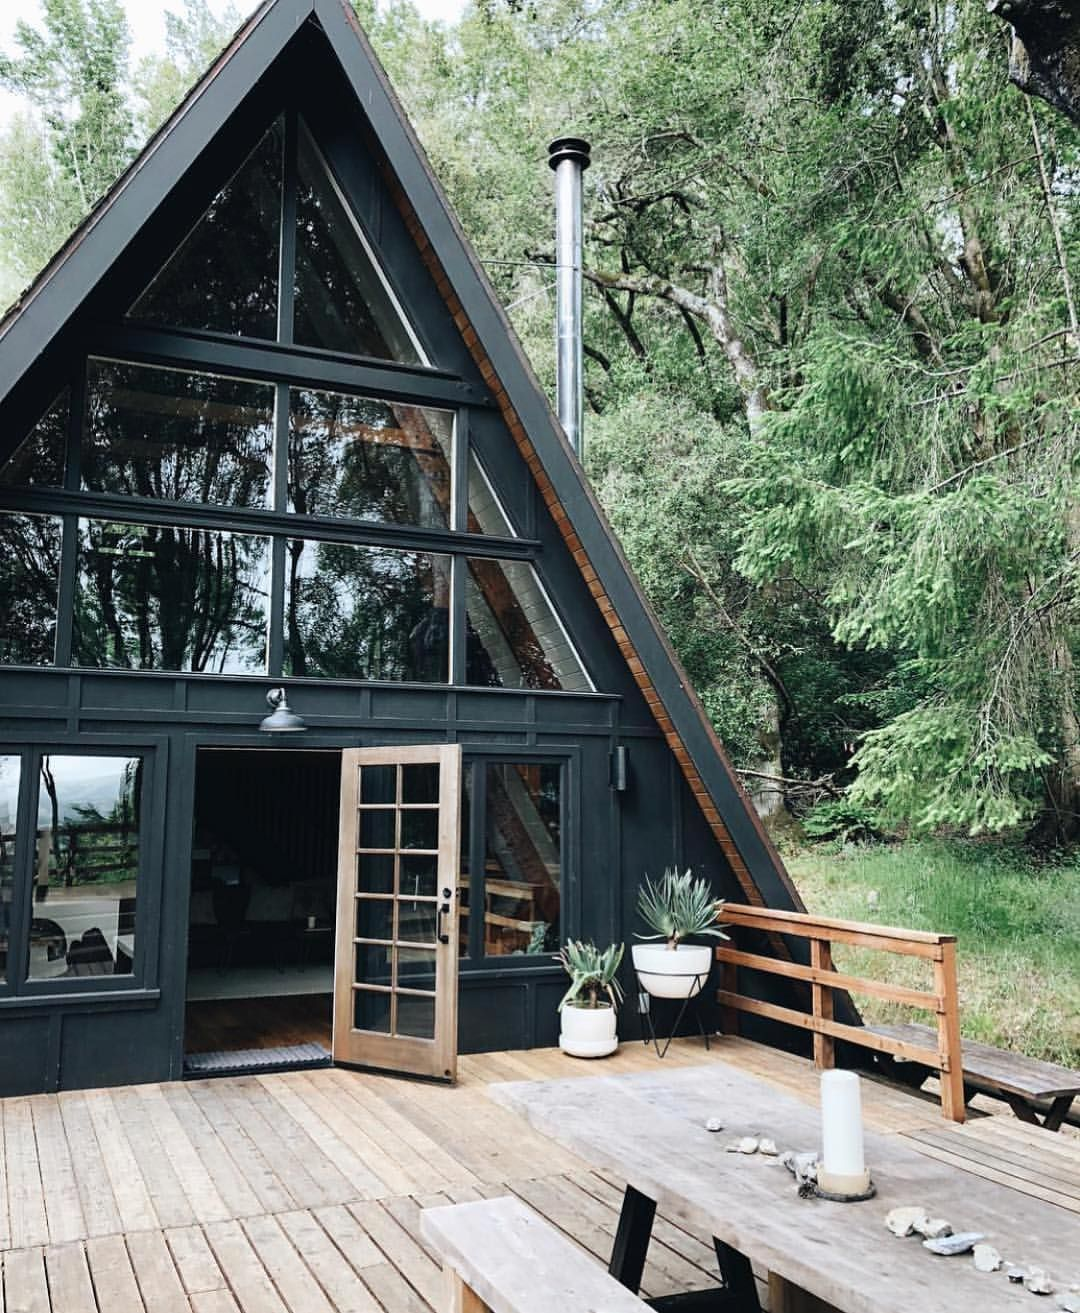 Get Inspired With Our Selection Of Amazing Houses For More Inspiration Just Visit Spotools Com A Frame House Architecture House